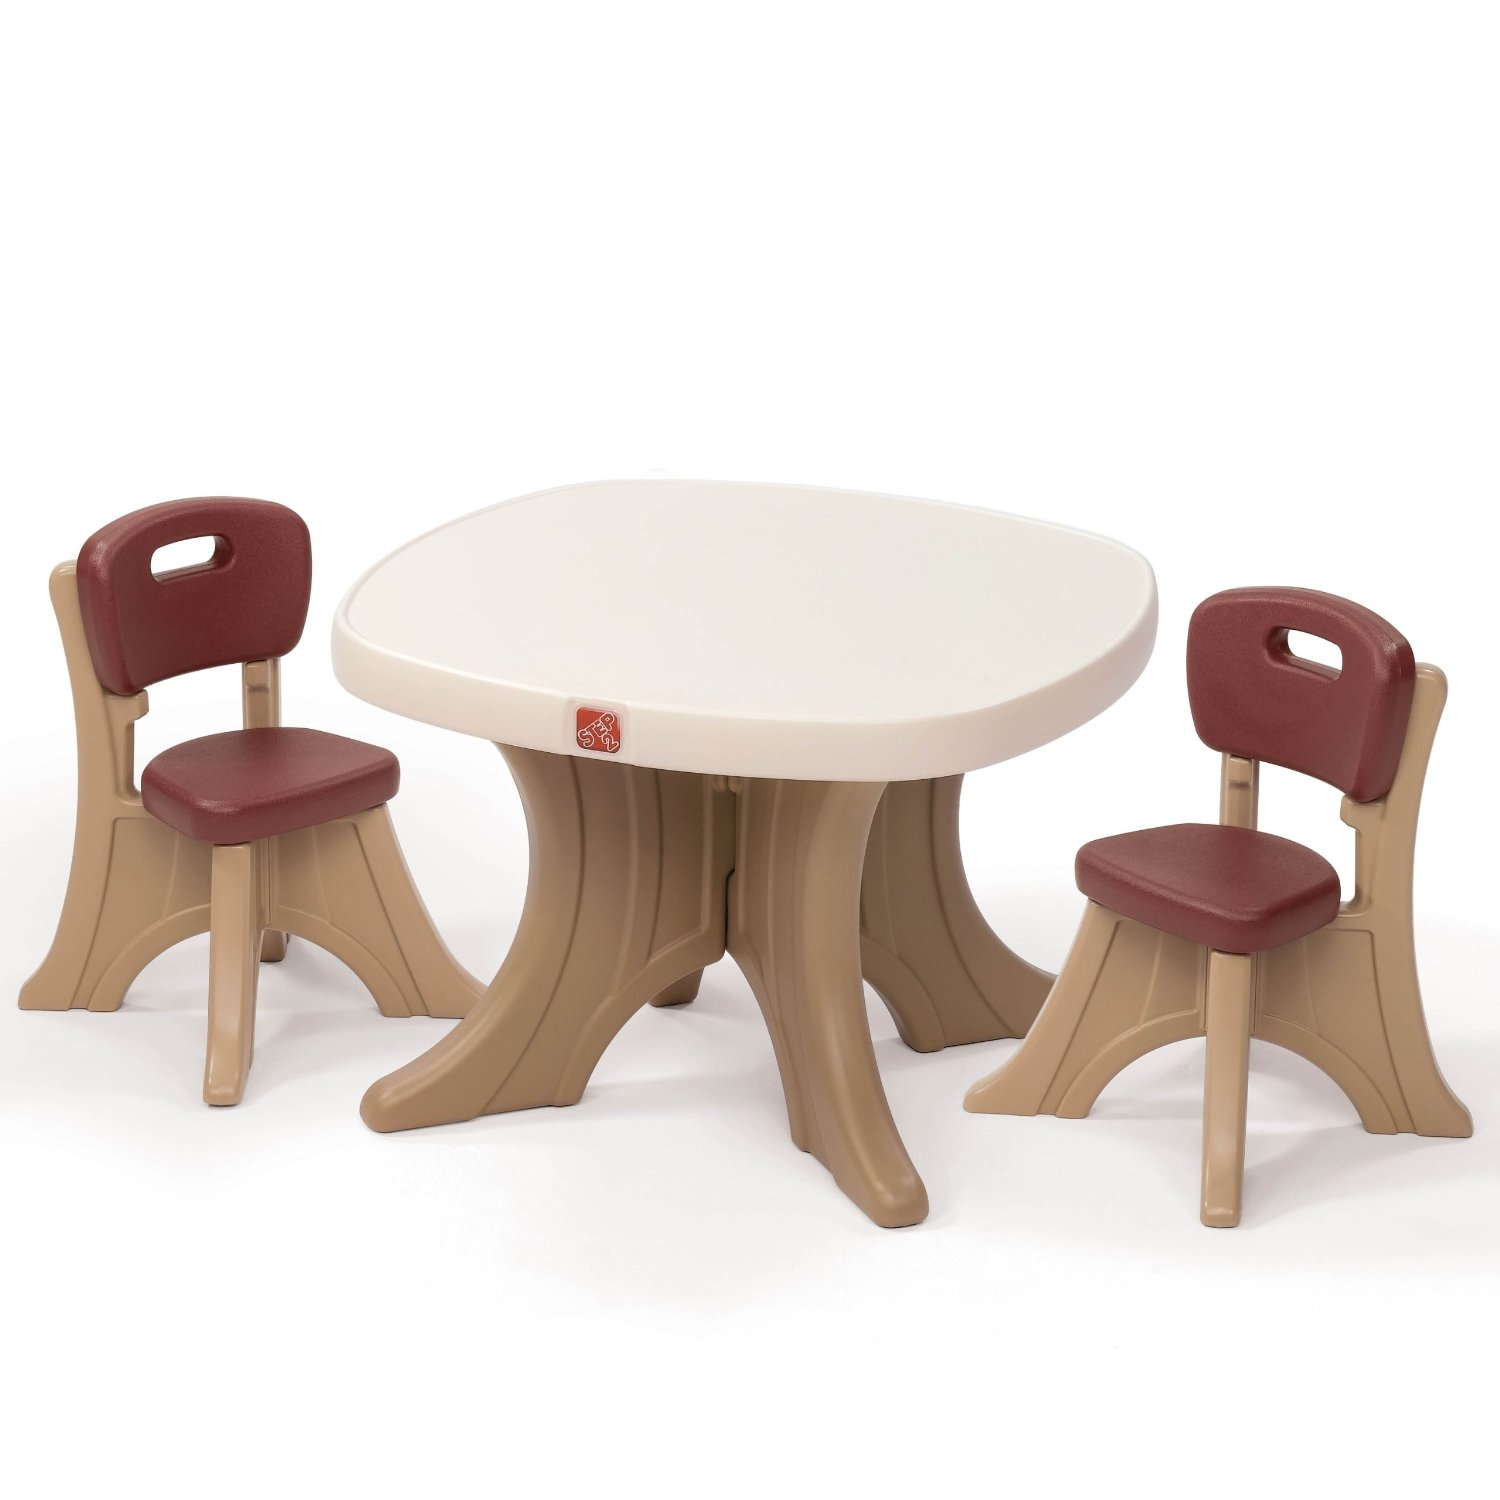 5 Best Table And Chair Set for Kids – Great t for you kids